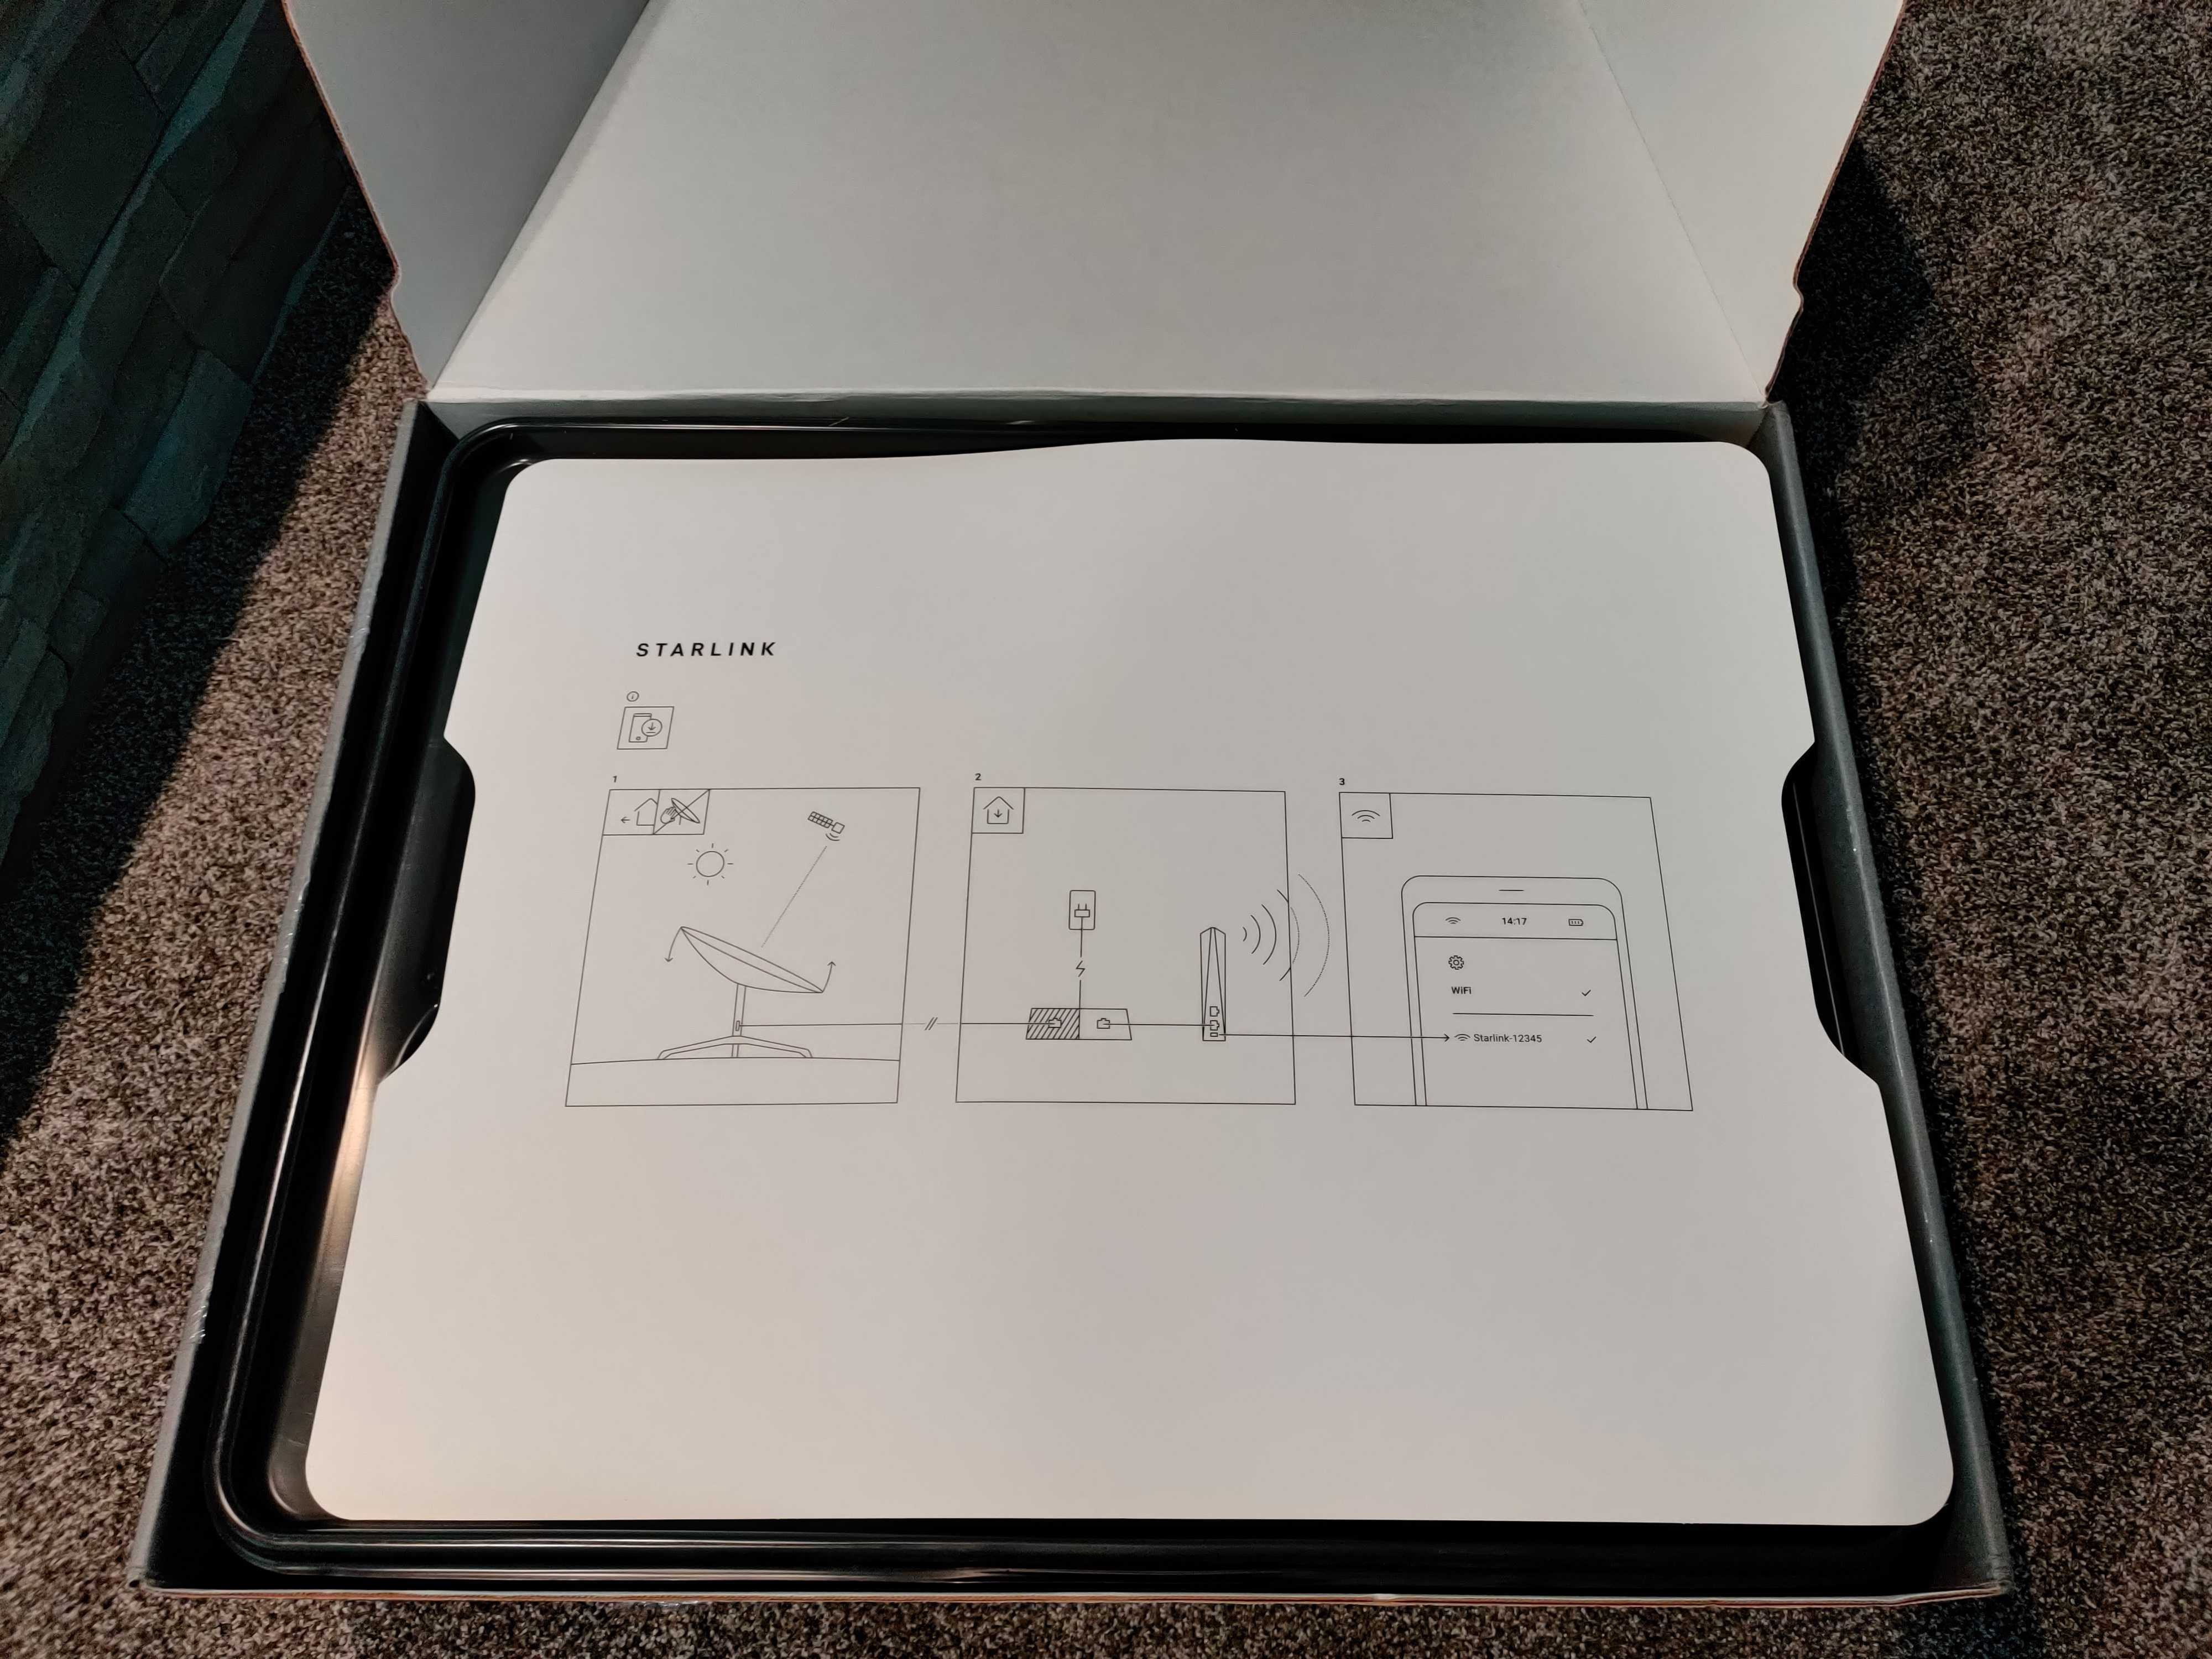 Instructions included in Starlink box